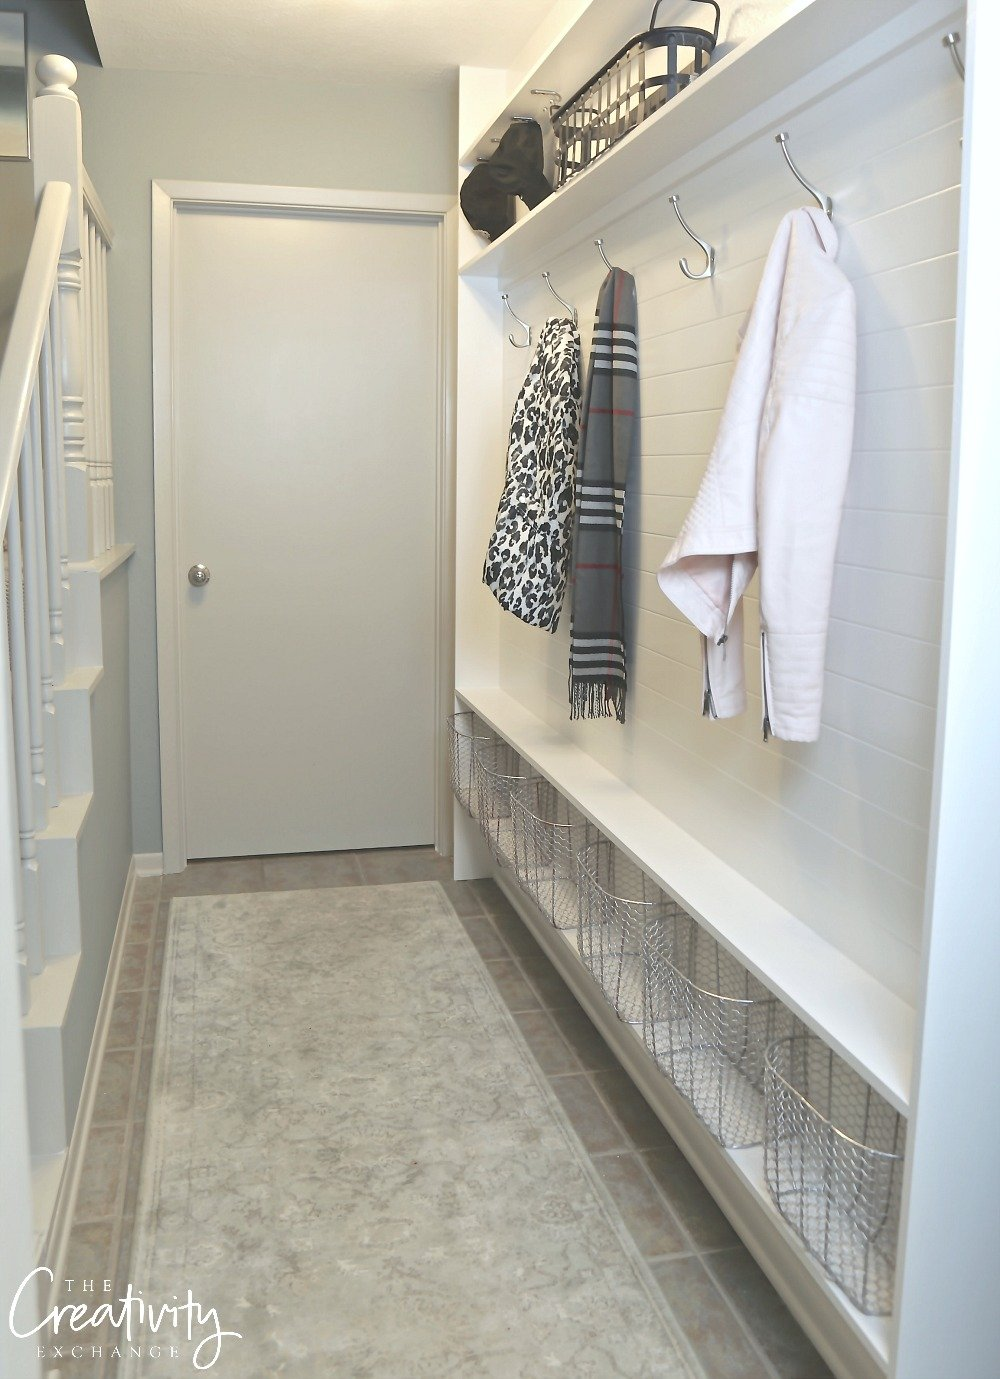 Narrow Hallway Mudroom Using Only 5.5 inches of Depth